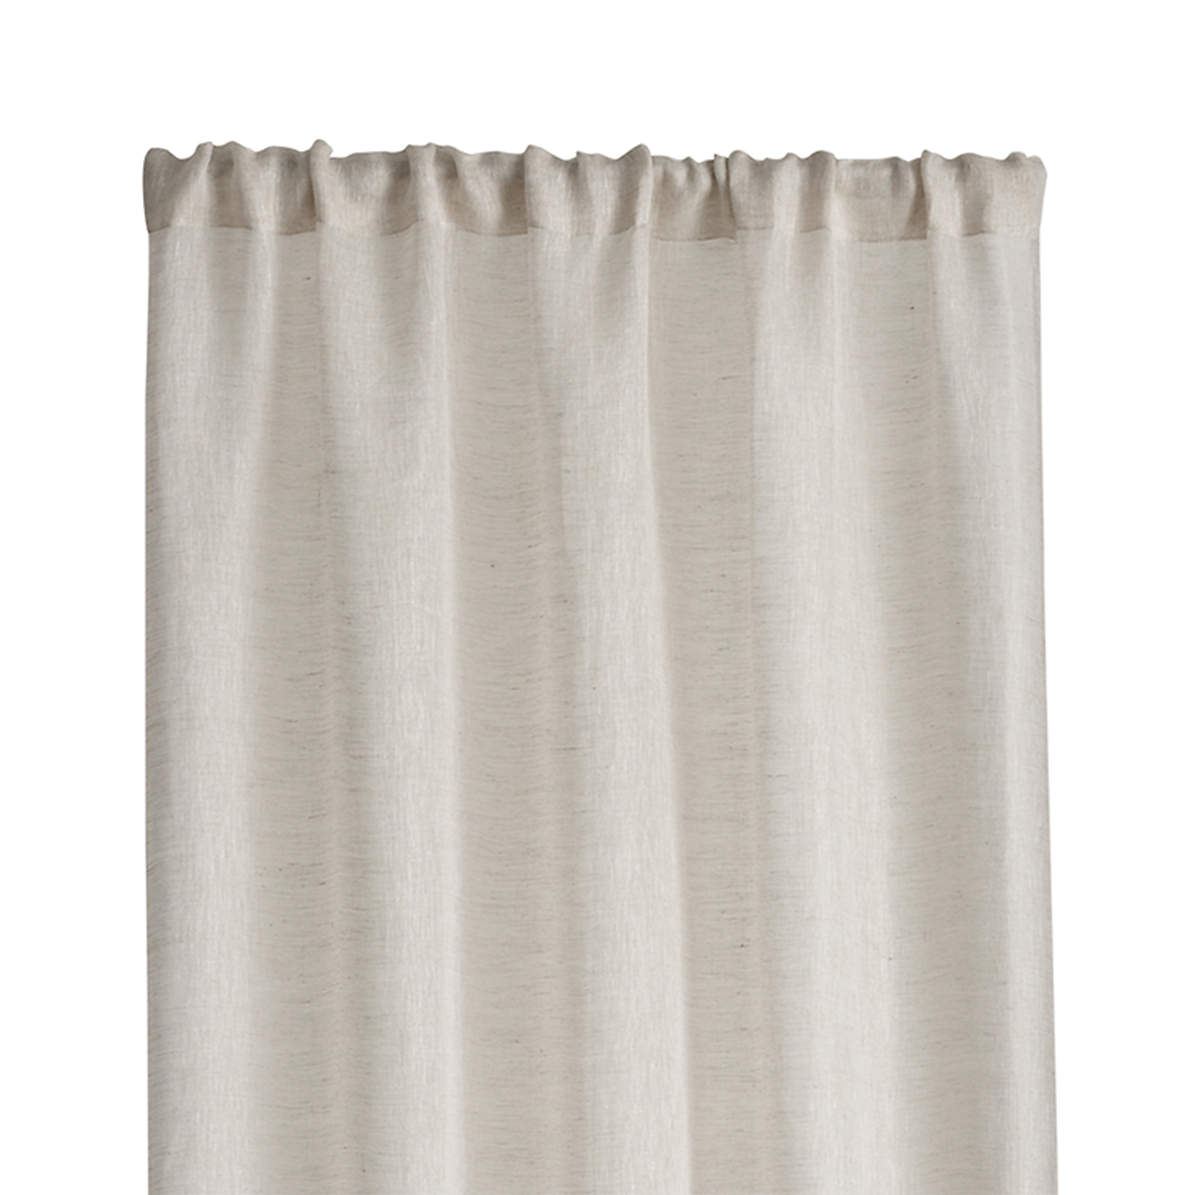 Linen Sheer 52 X63 Natural Curtain Panel Reviews Crate And Barrel